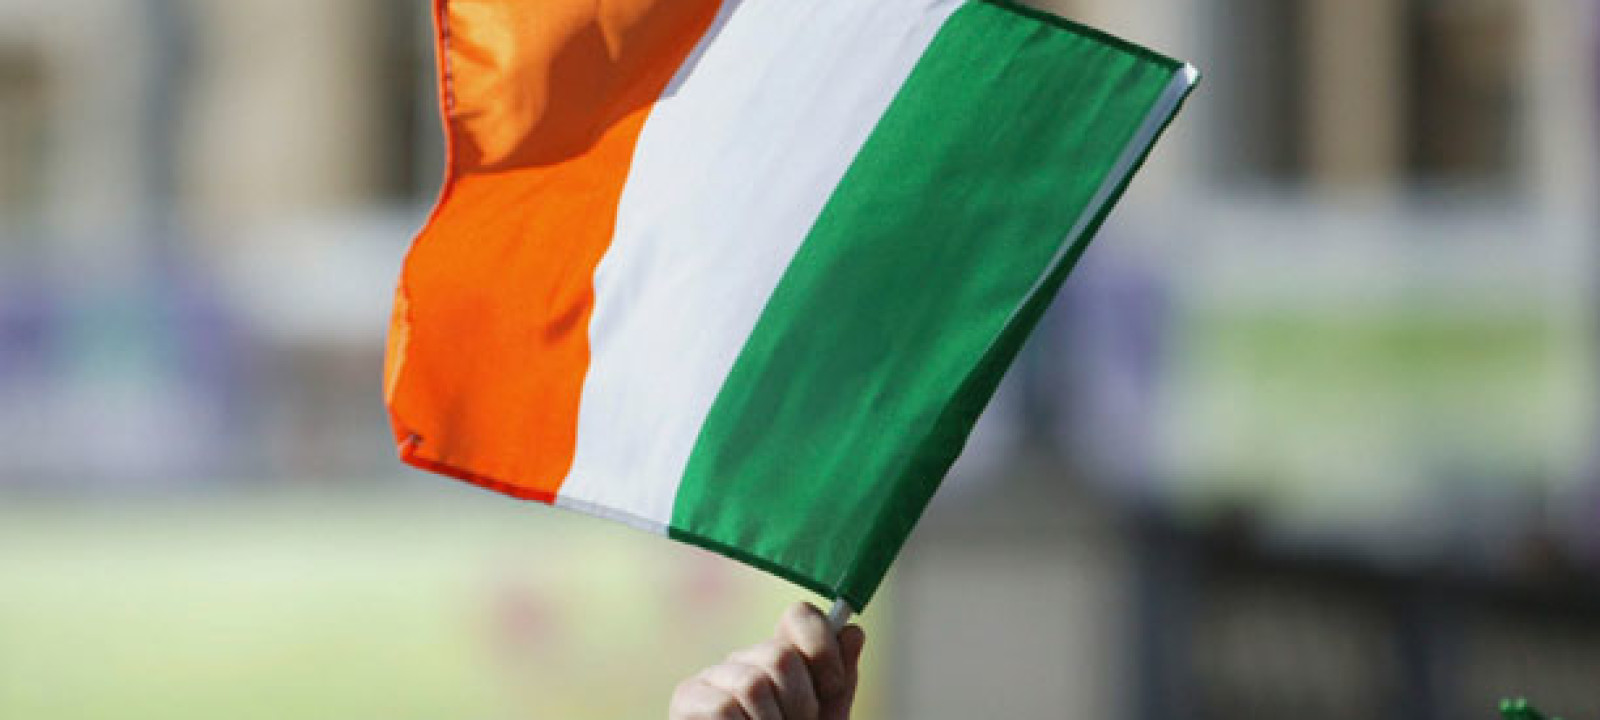 Irish tricolour